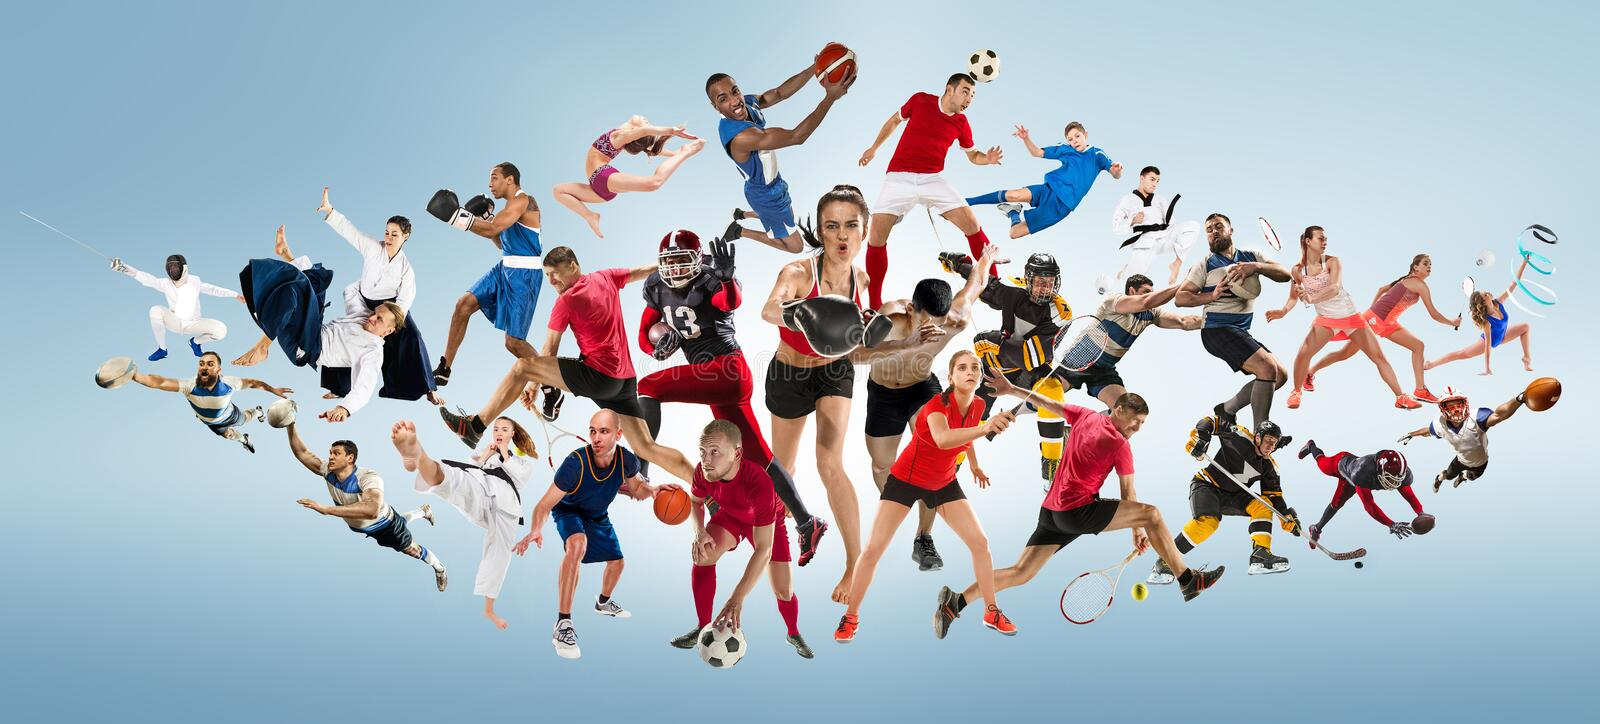 Sport collage about kickboxing, soccer, american football, basketball, ice hockey, badminton, taekwondo, tennis, rugby. Attack. Sport collage about kickboxing royalty free stock photos